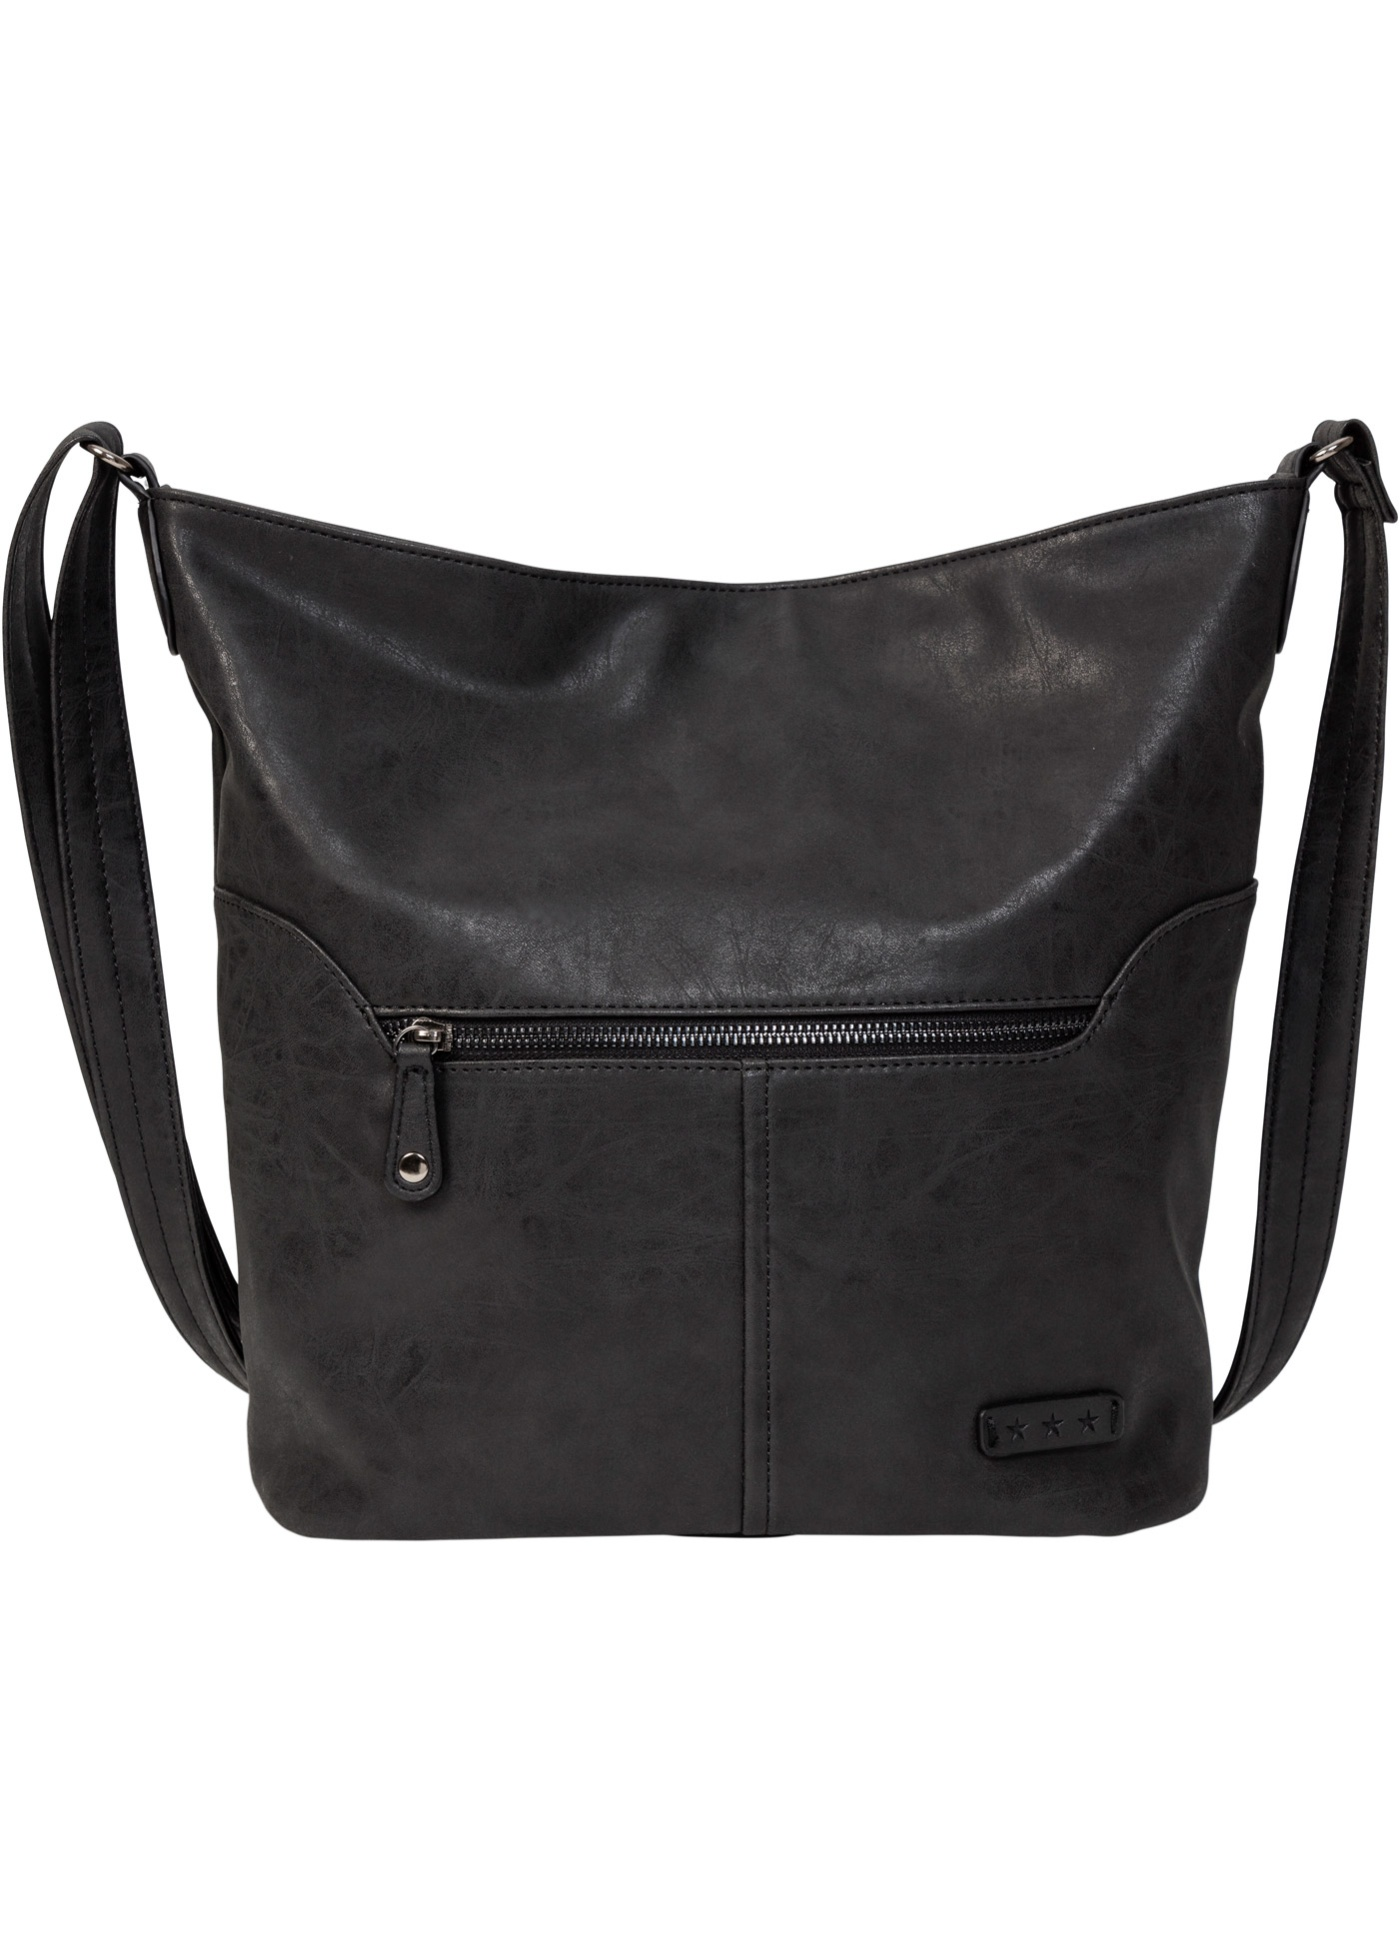 Borsa a tracolla Vintage (Nero) - bpc bonprix collection